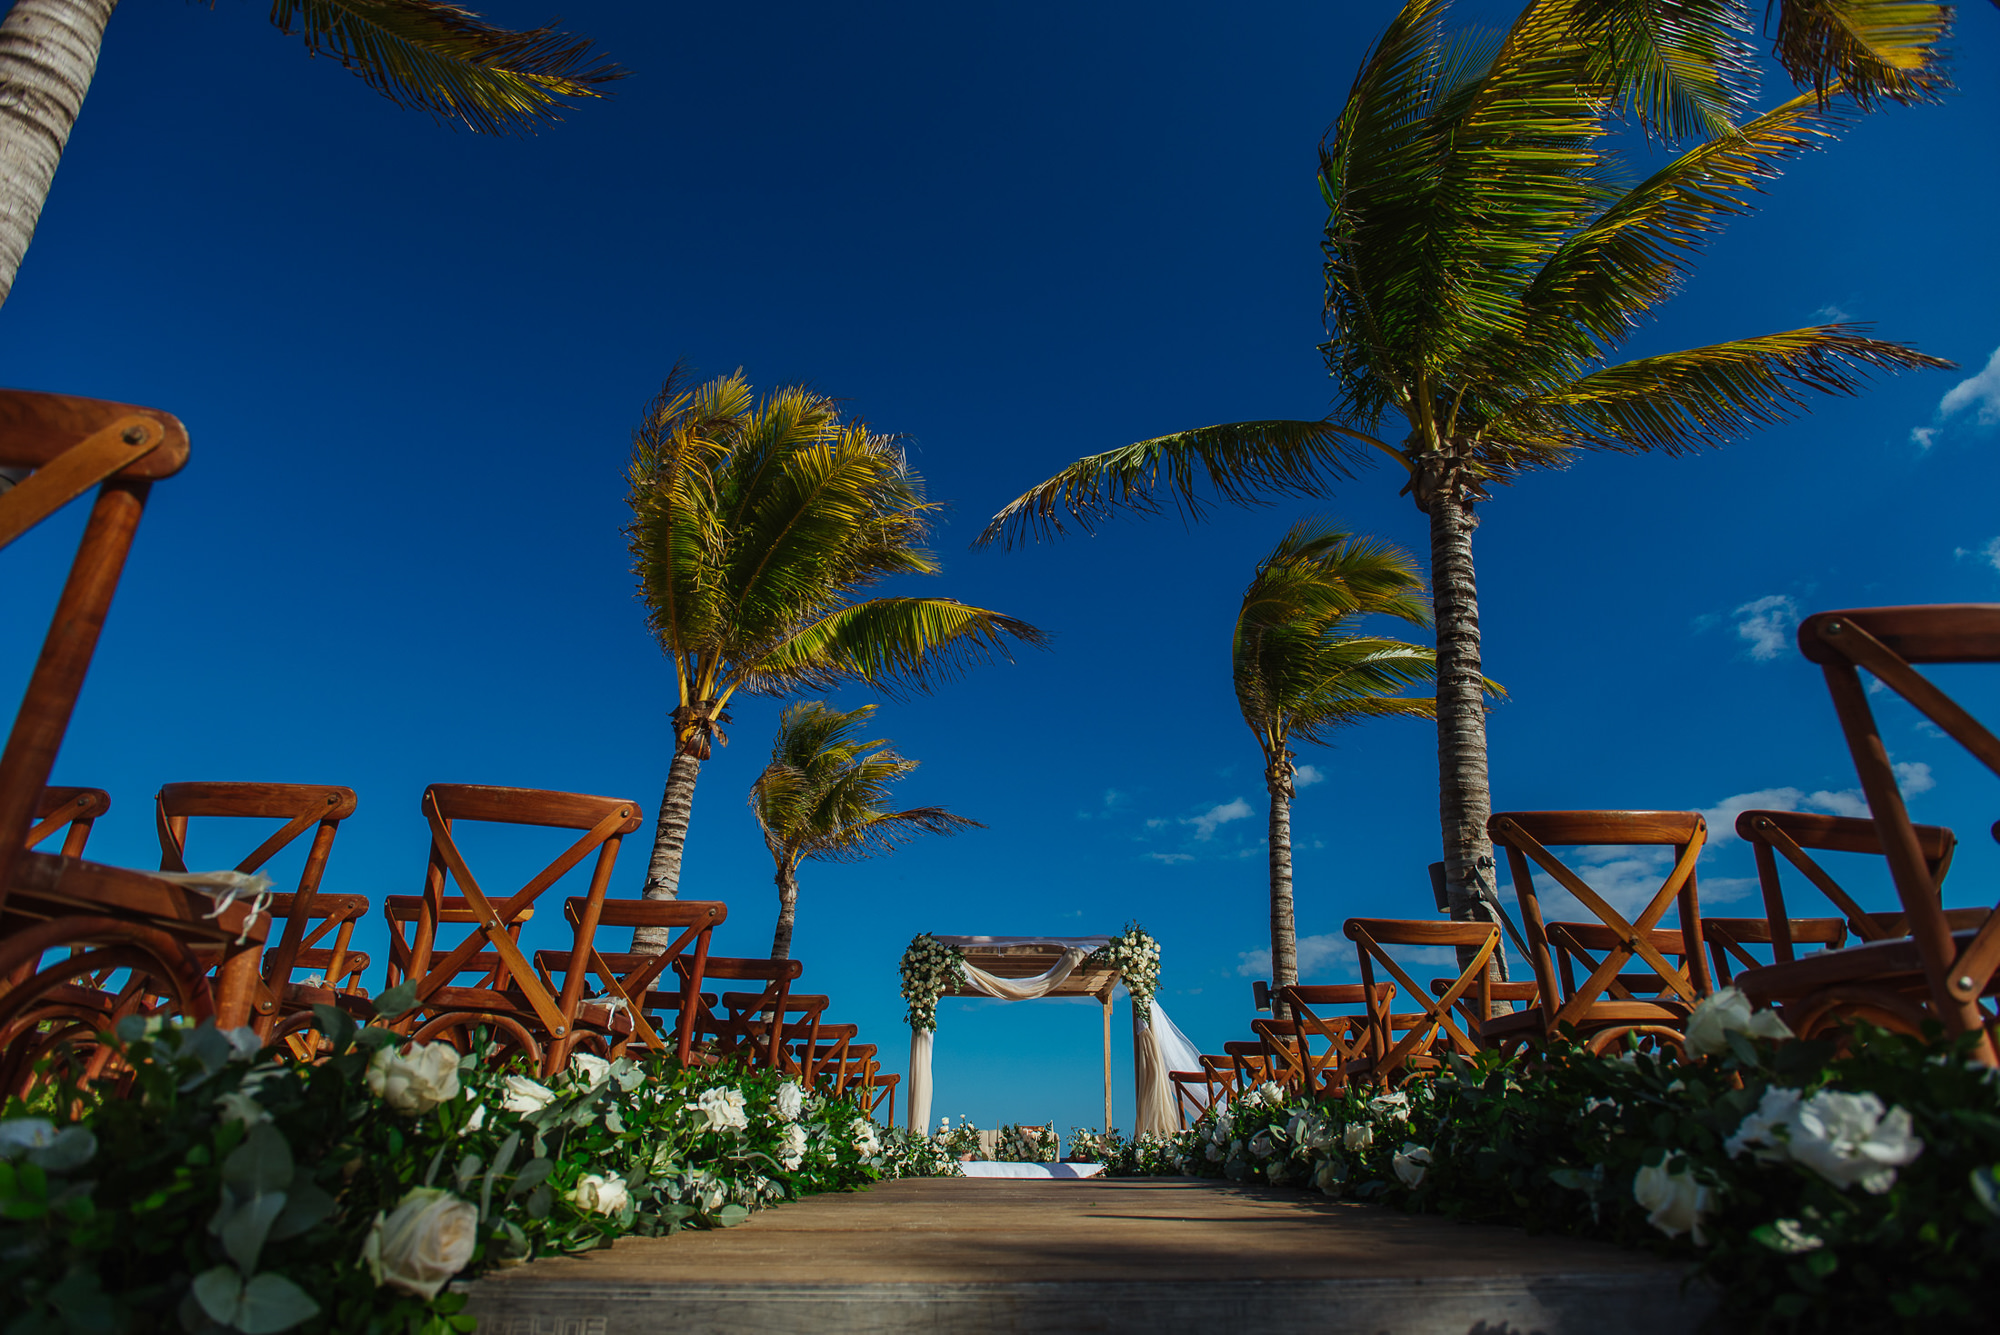 Ceremony aisle decor against palm trees and blue sky, by Citlalli Rico